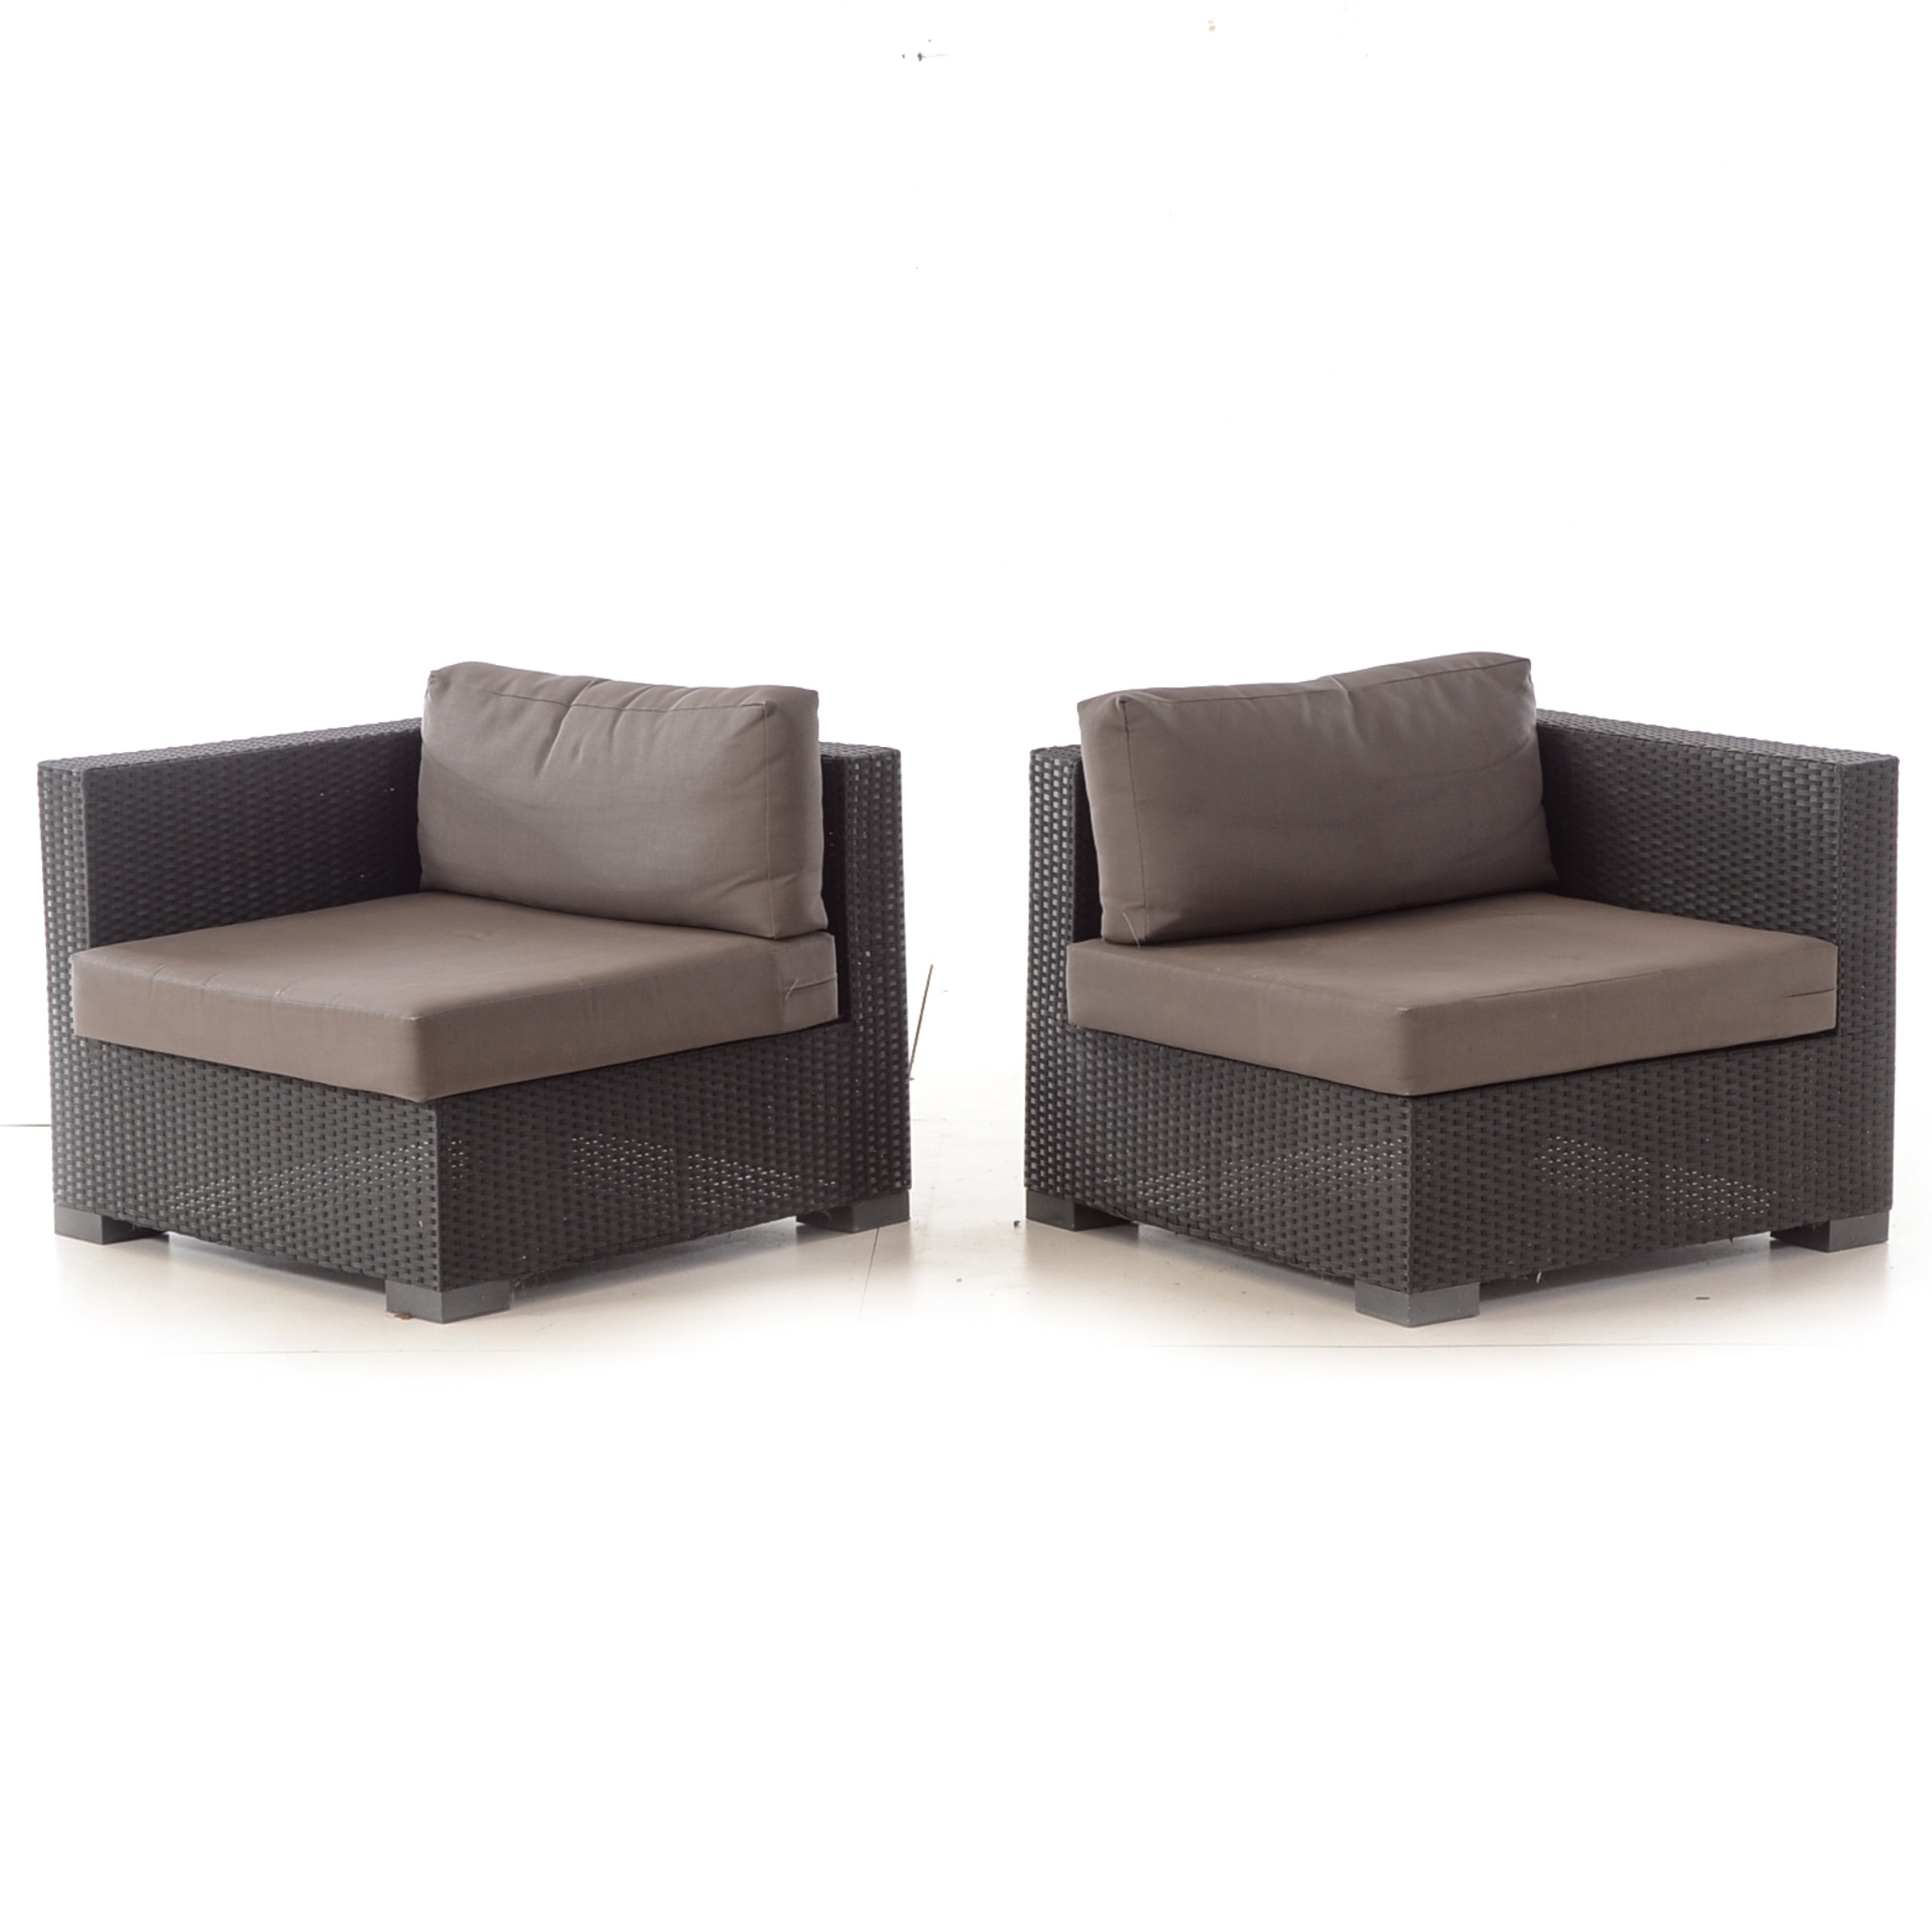 Pair of Outdoor Arm Chairs